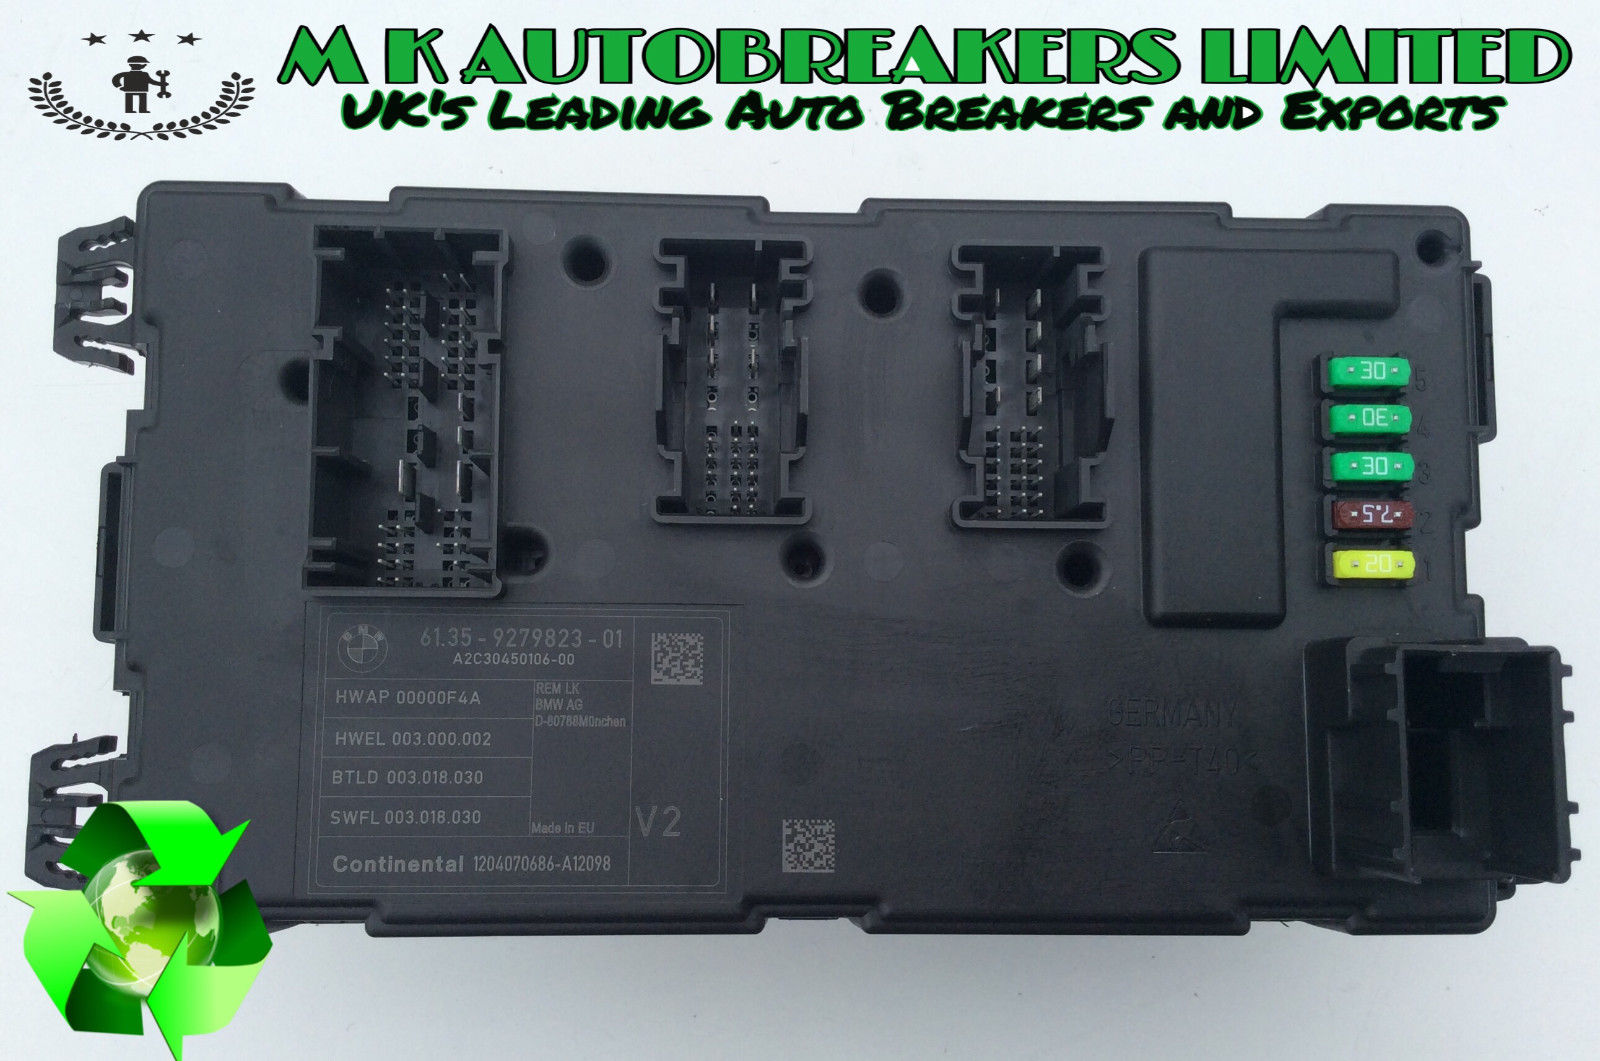 BMW F30 From 12-15 Rear Electronic Sam Fuse box (Breaking For Spare Parts)  | MK Autobreakers Ltd.Car Spares | Breakers Yard | MK Autobreakers Ltd.